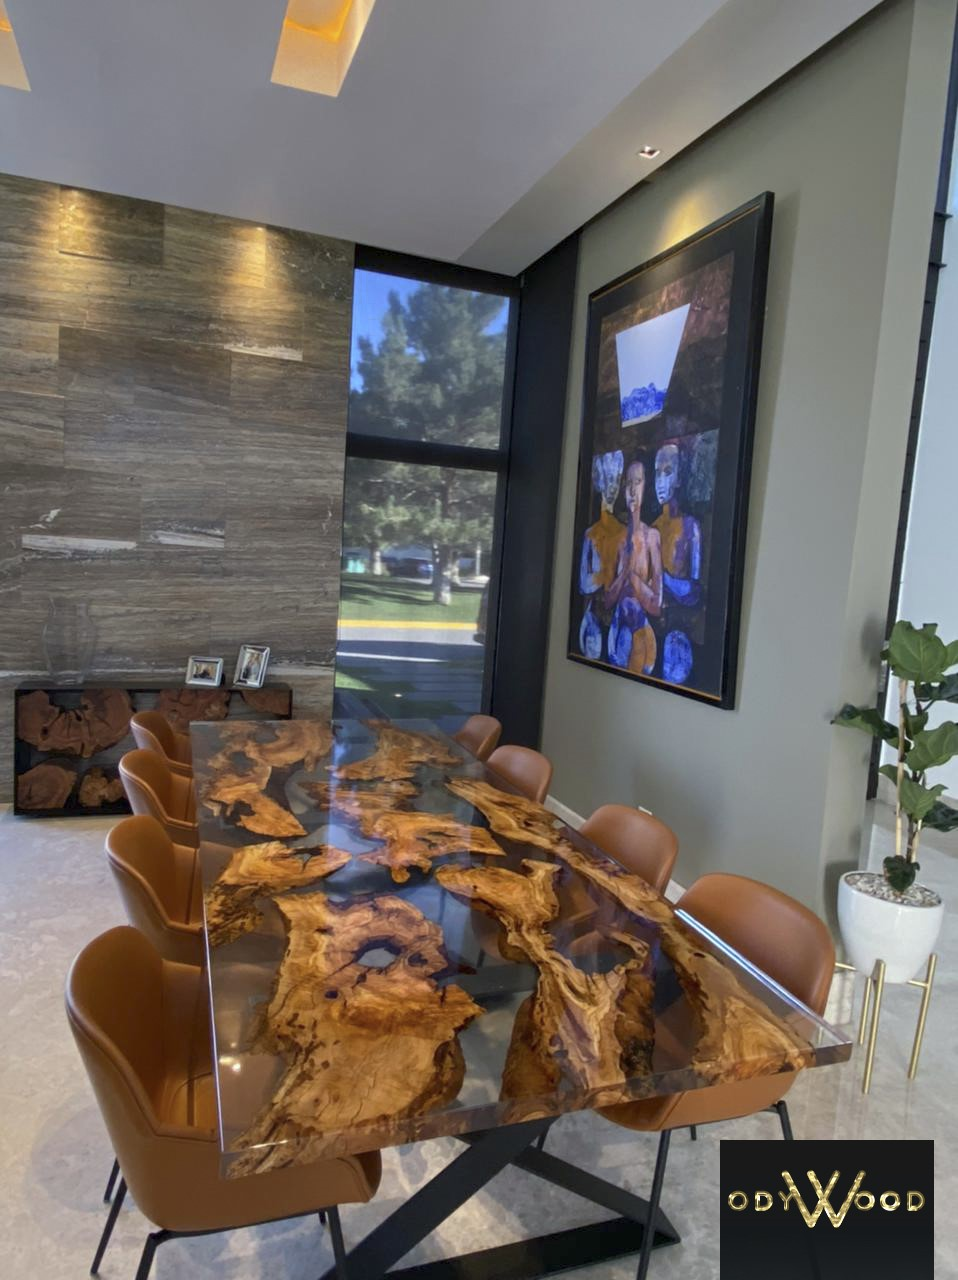 Epoxy Resin Table with Olive Wood Slabs'in resmi